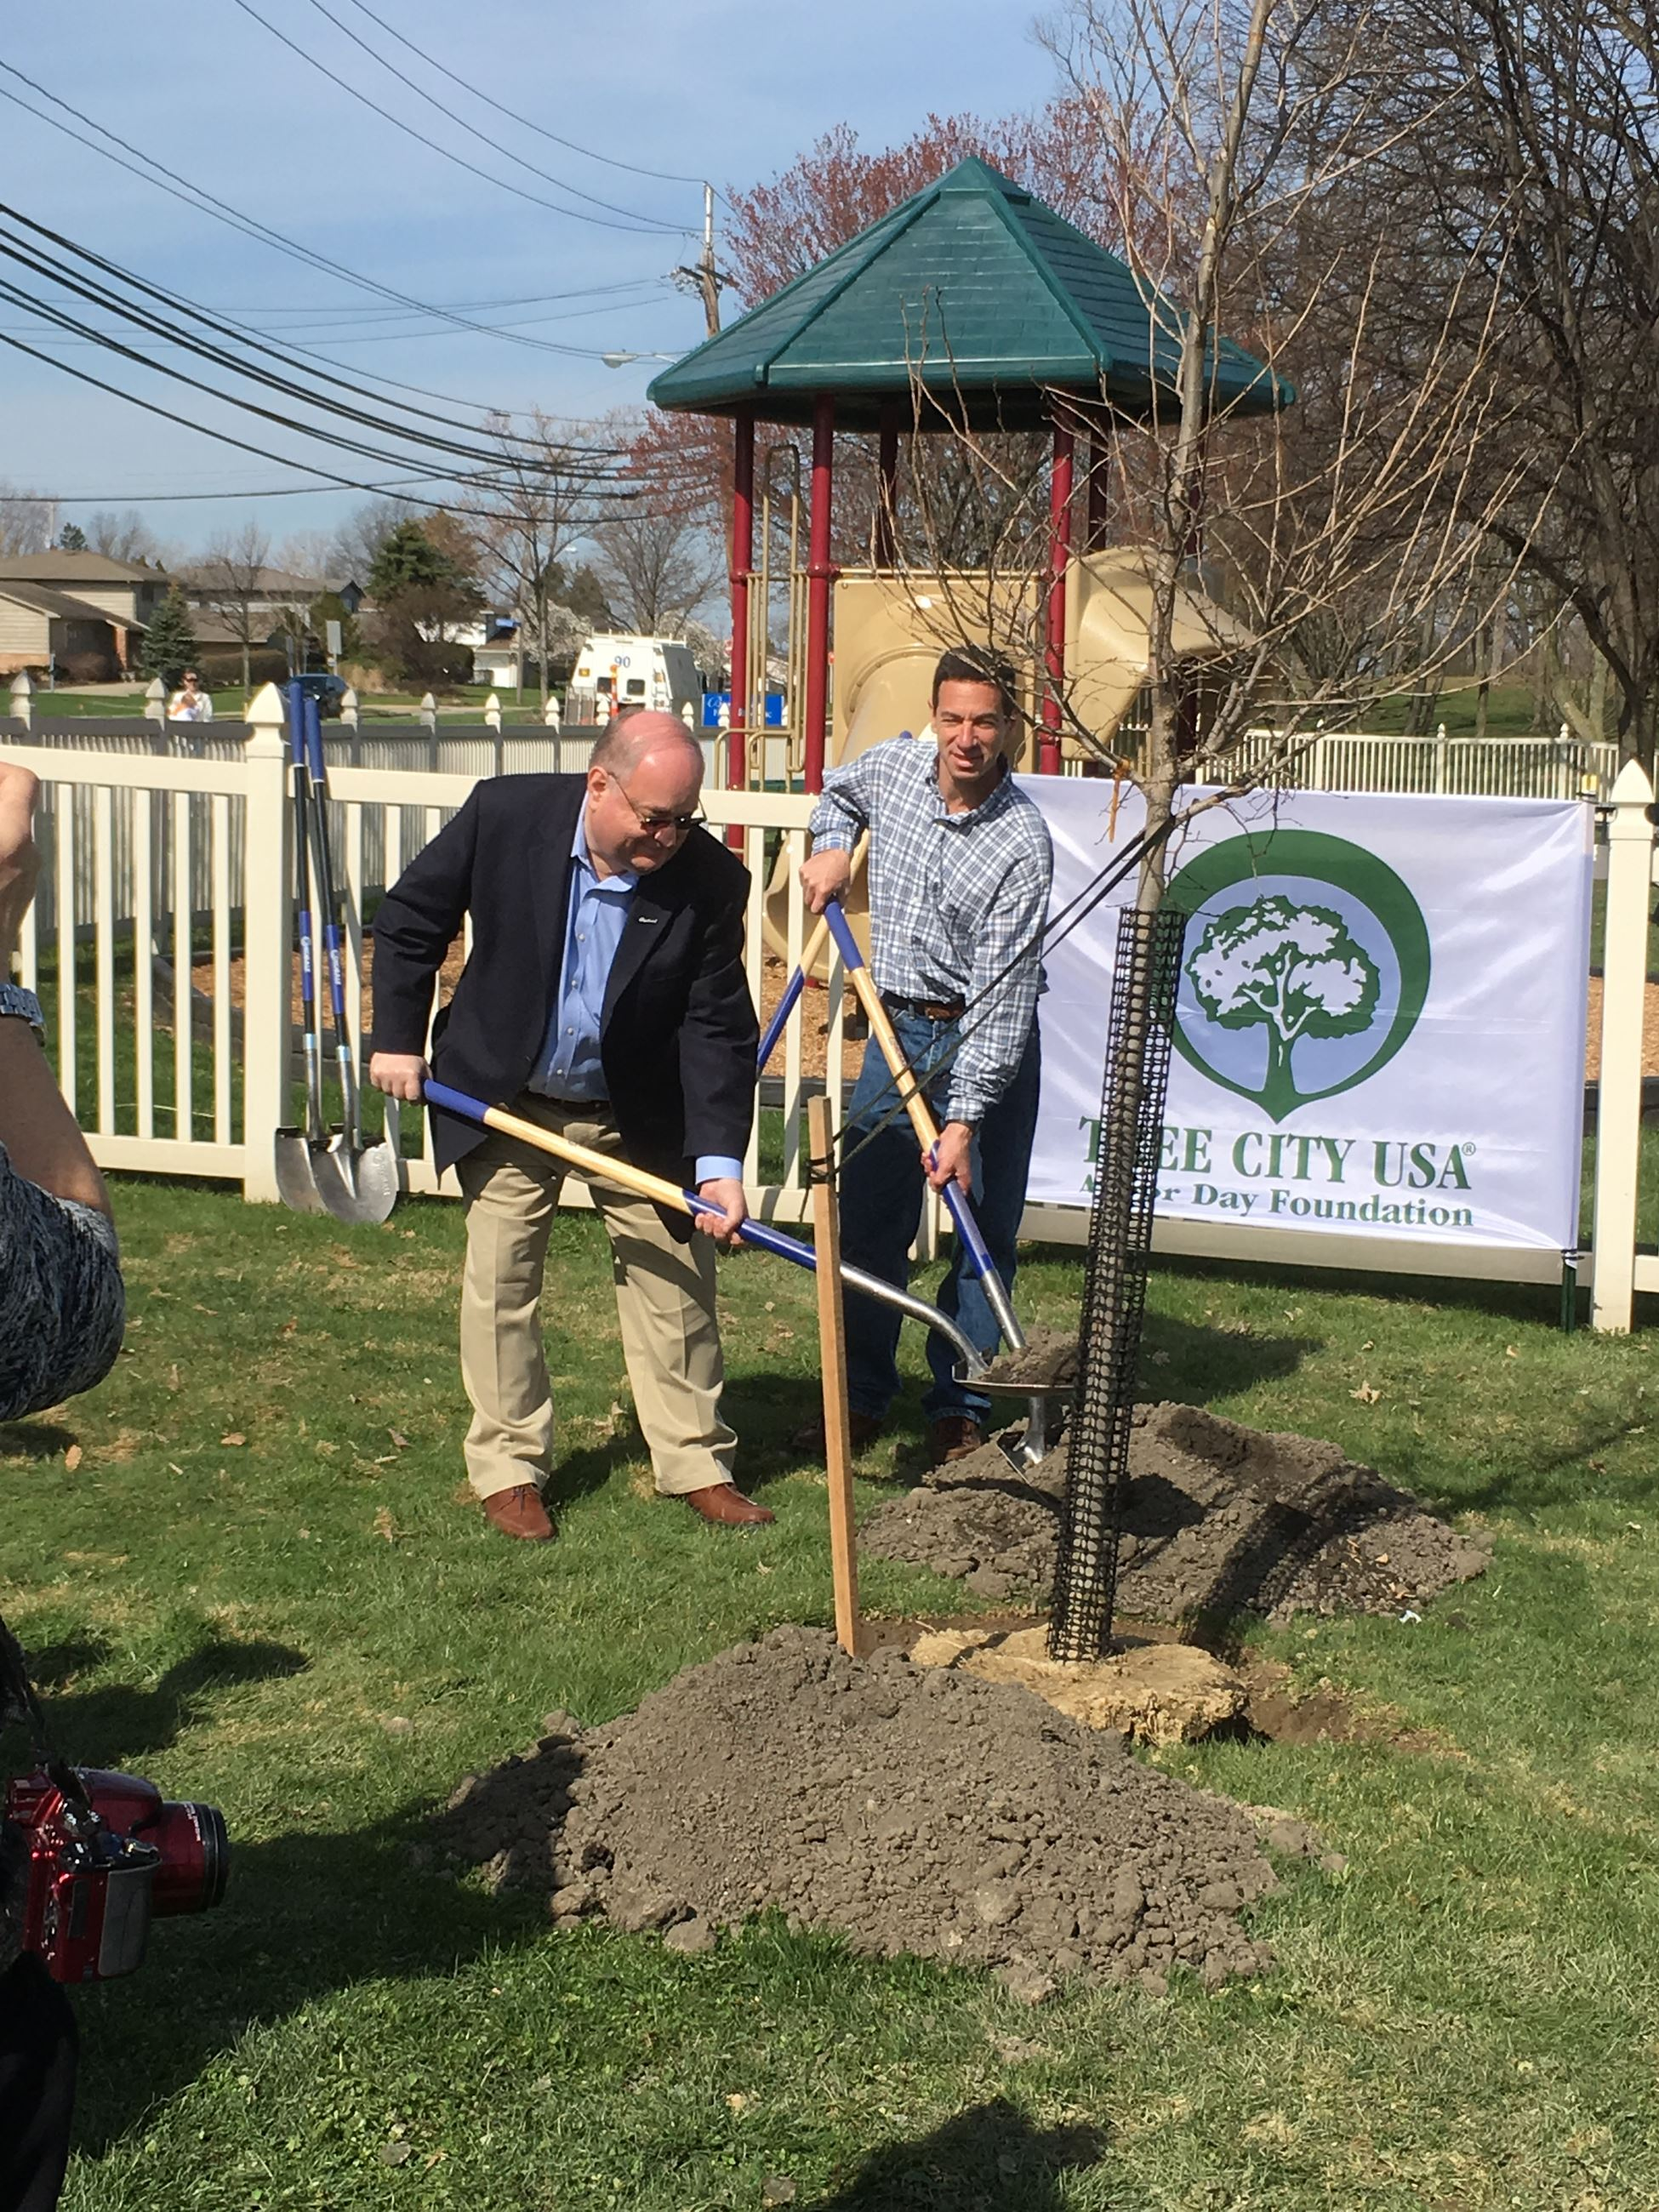 Mayor Horwitz and Councilman Justin Berns are shoveling dirt around a newly planted tree for Arbor D